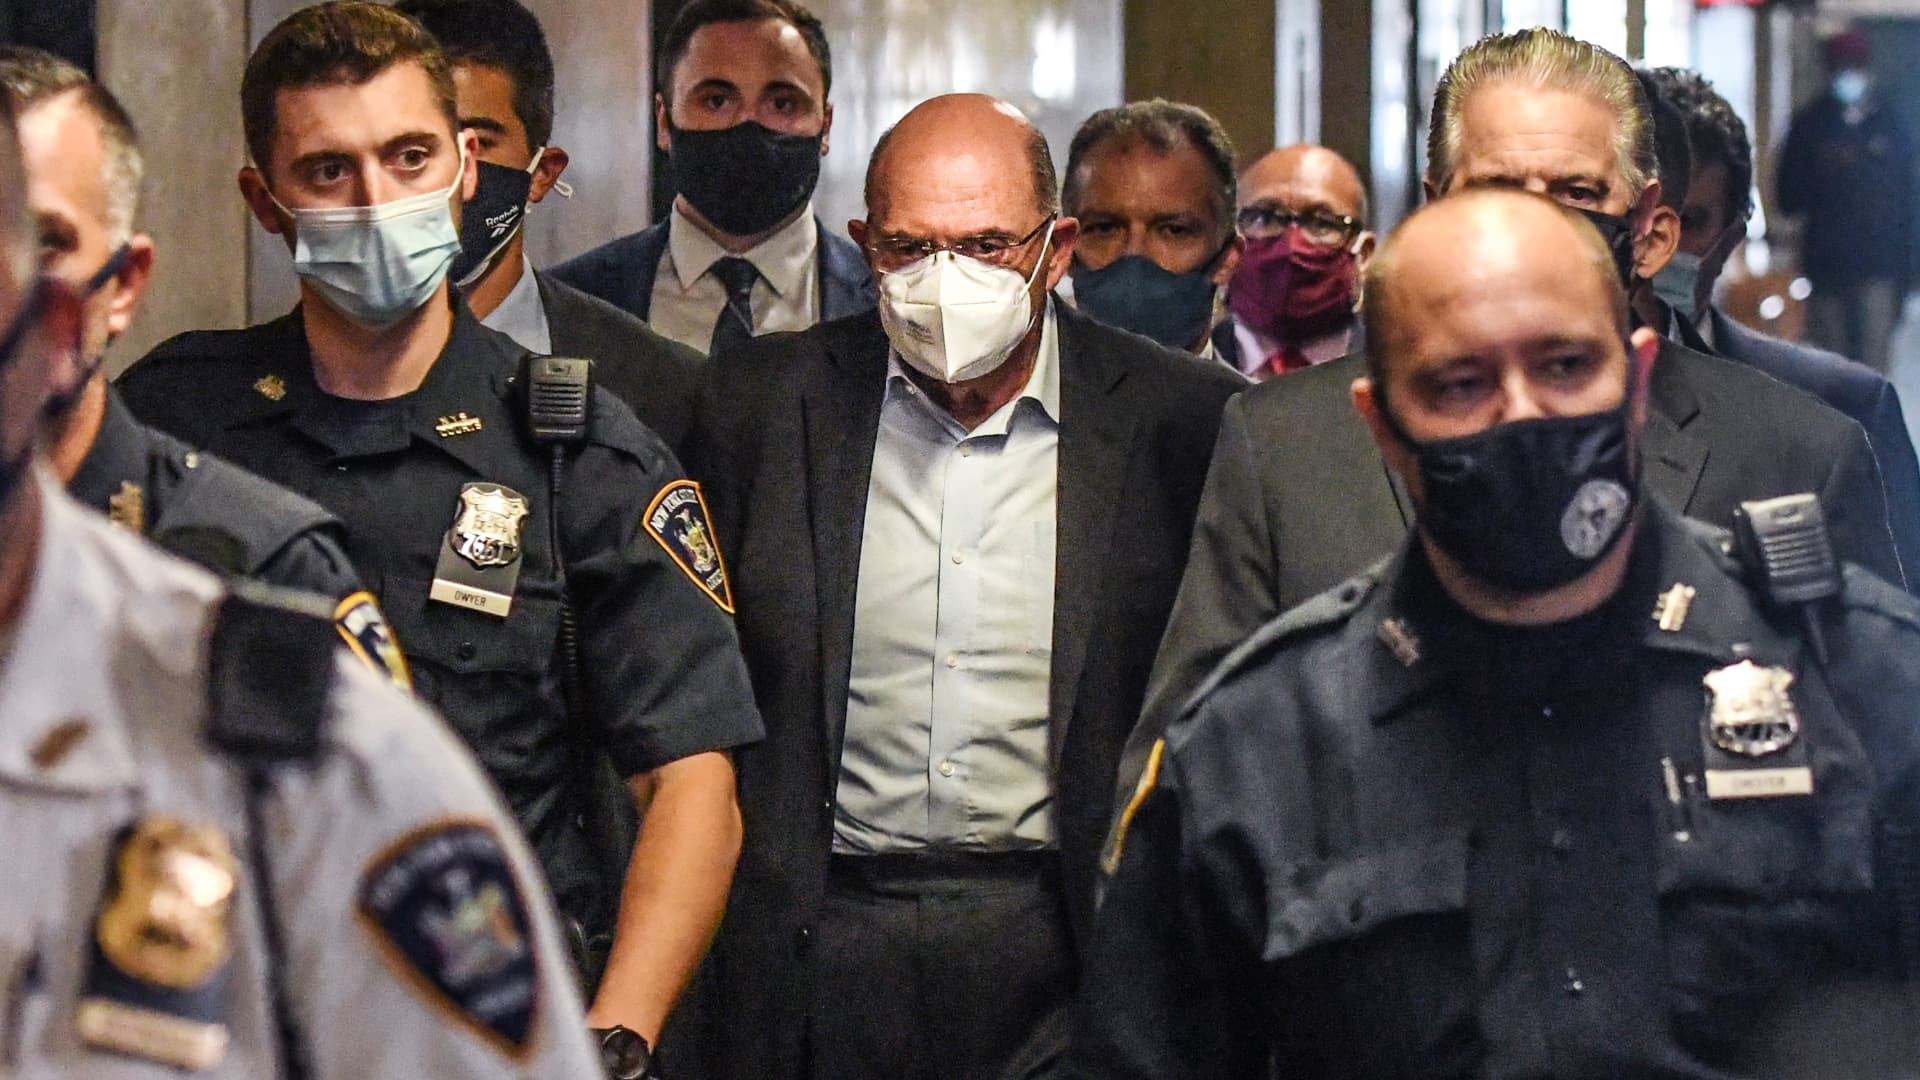 Allen Weisselberg, chief financial officer of Trump Organization Inc., center, walks towards a courtroom at criminal court in New York, U.S., on Thursday, July 1, 2021.